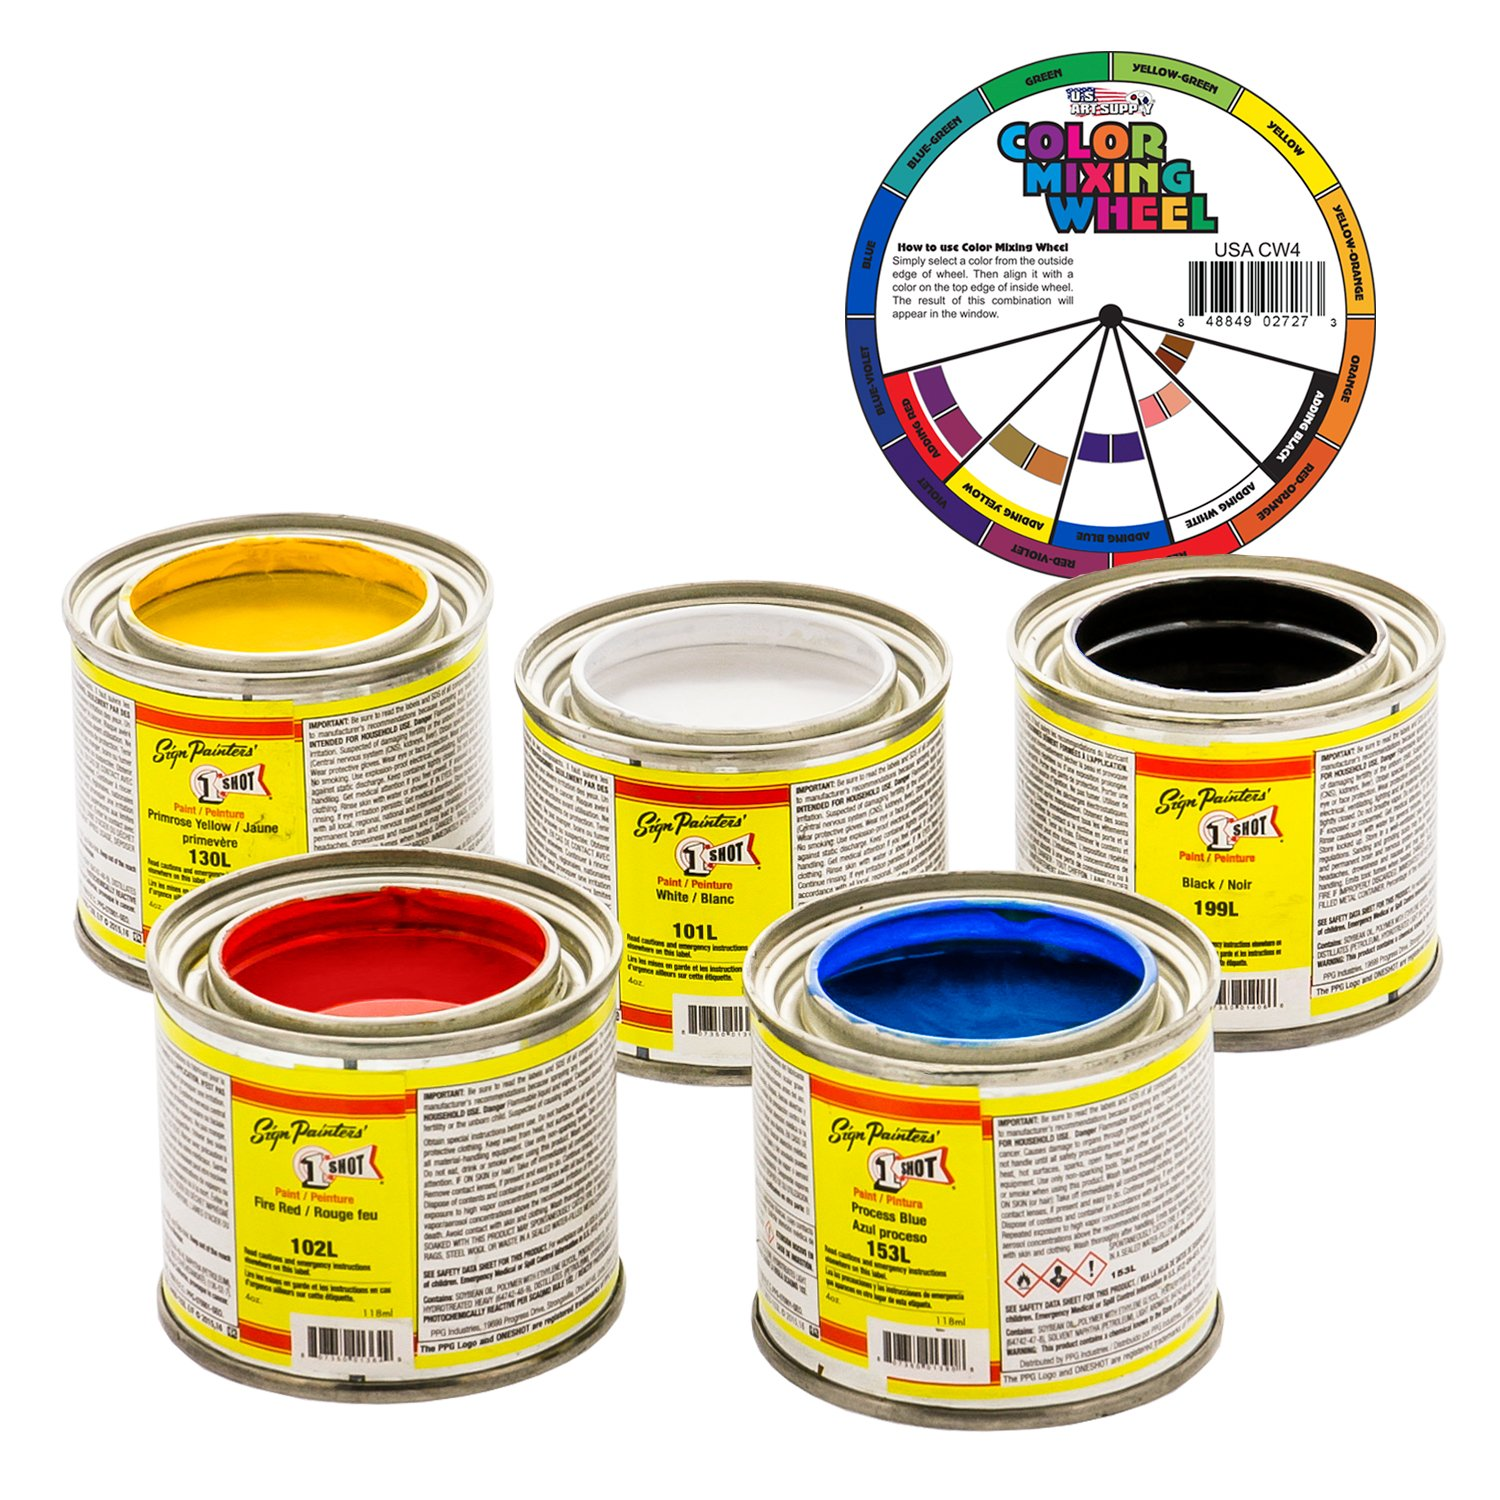 1-One-Shot 5 COLOR LETTERING ENAMEL-PINSTRIPE PAINT KIT